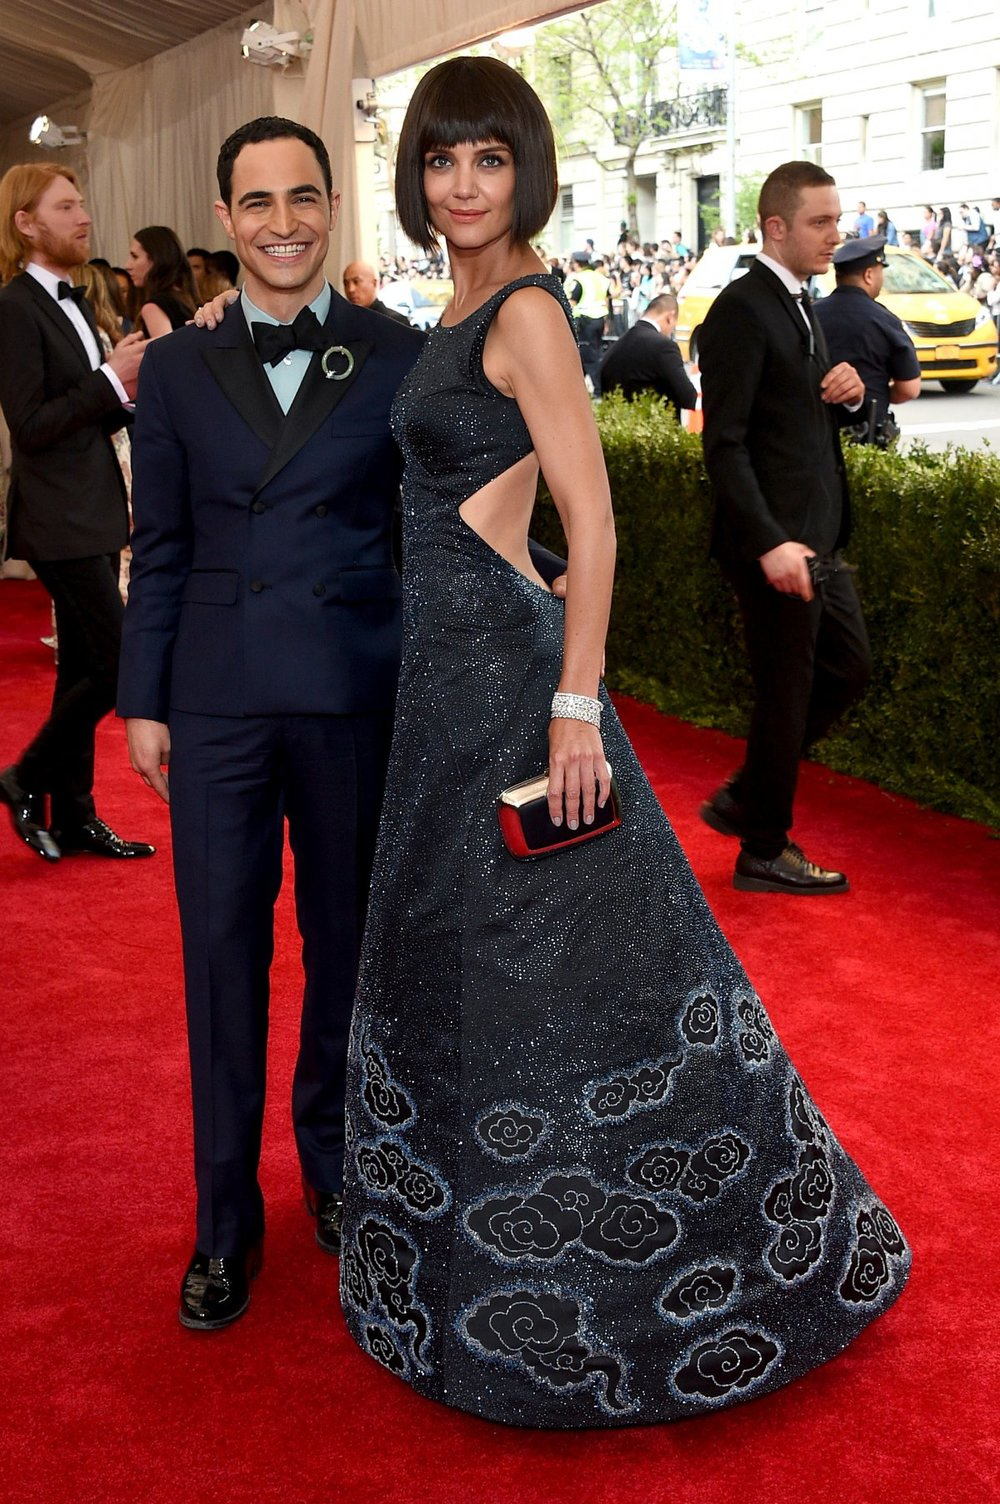 KATIE HOLMES in ZAC POSEN with CHOPARD jewelry, with ZAC POSEN himself